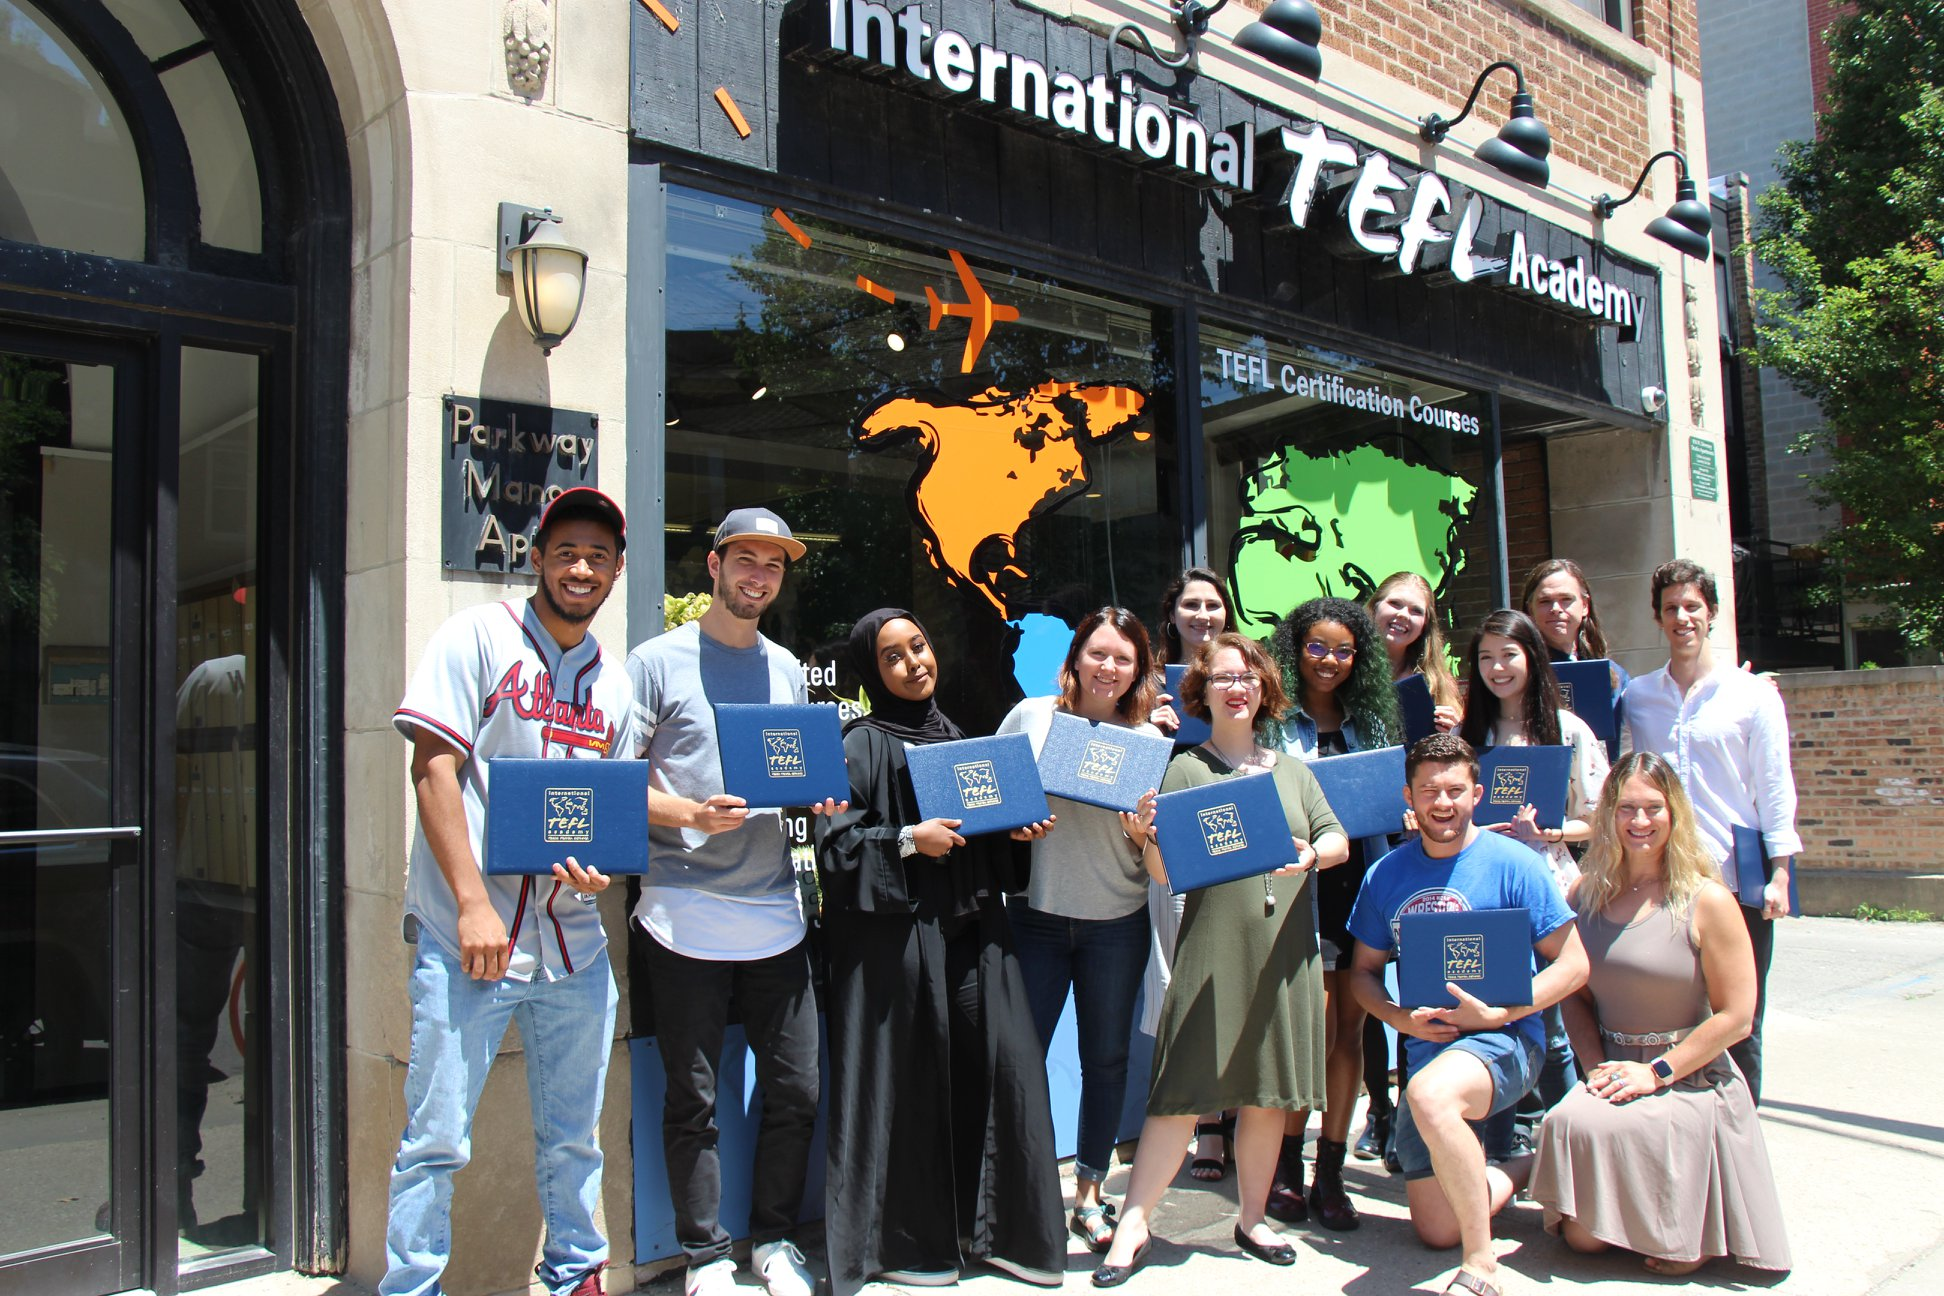 10 Reasons Why International TEFL Academy Offers the Best TEFL Certification for Teaching English Abroad in 2020